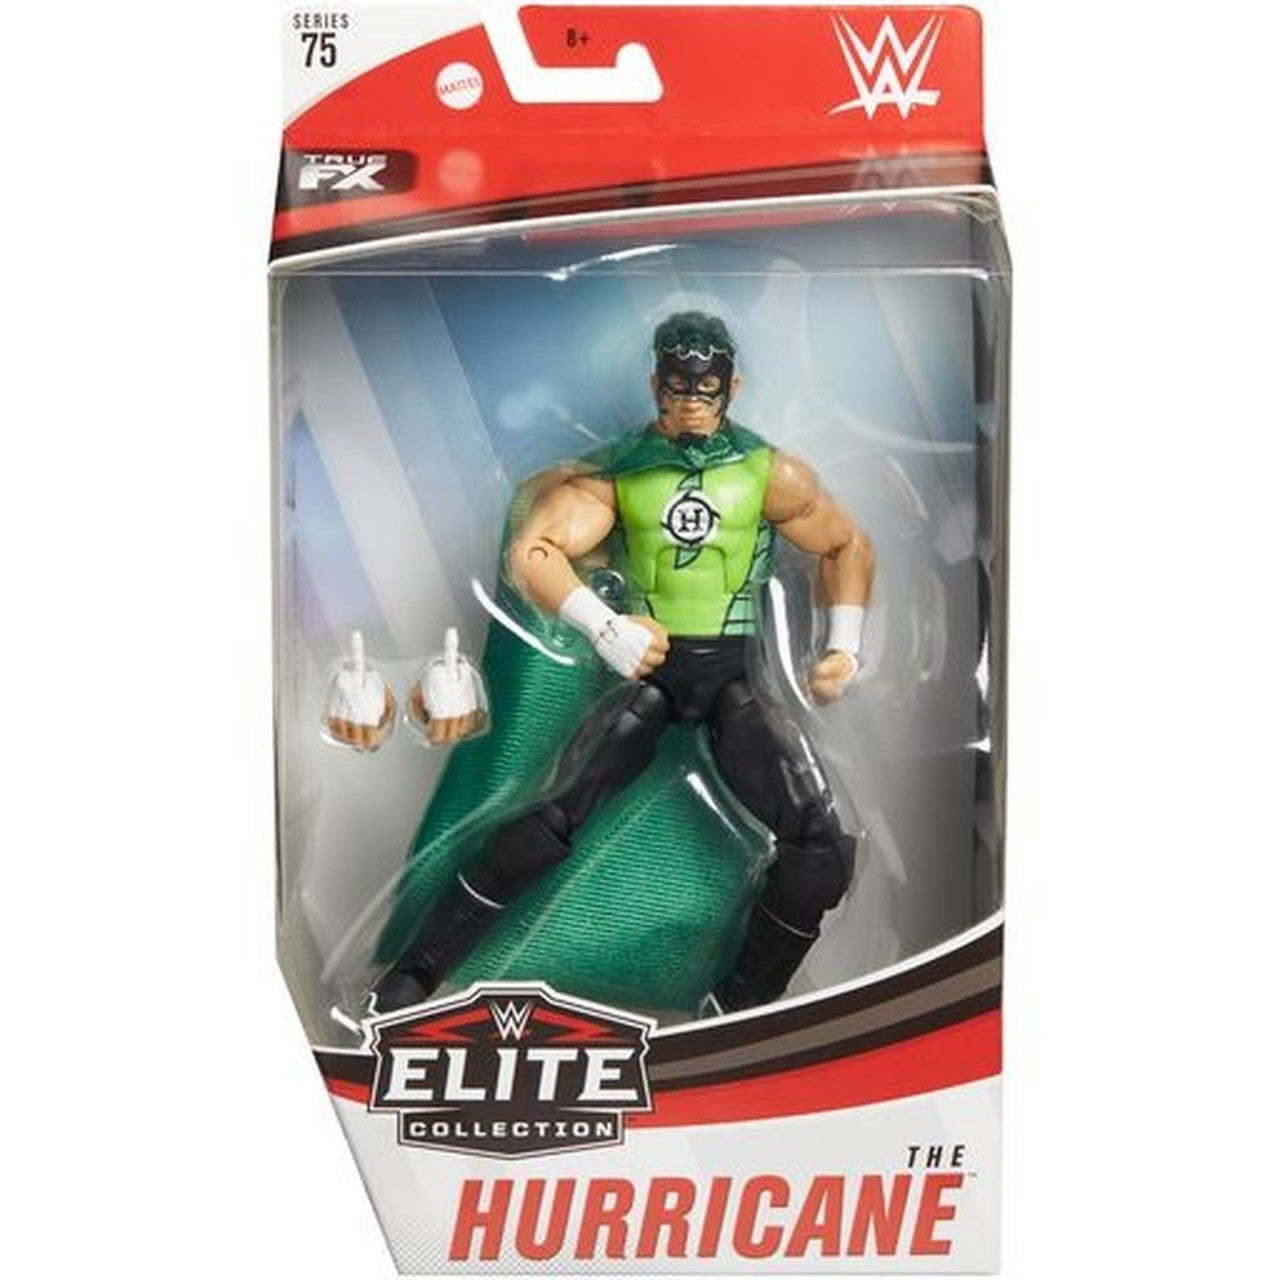 Image of WWE Elite Collection Series 75 - Hurricane